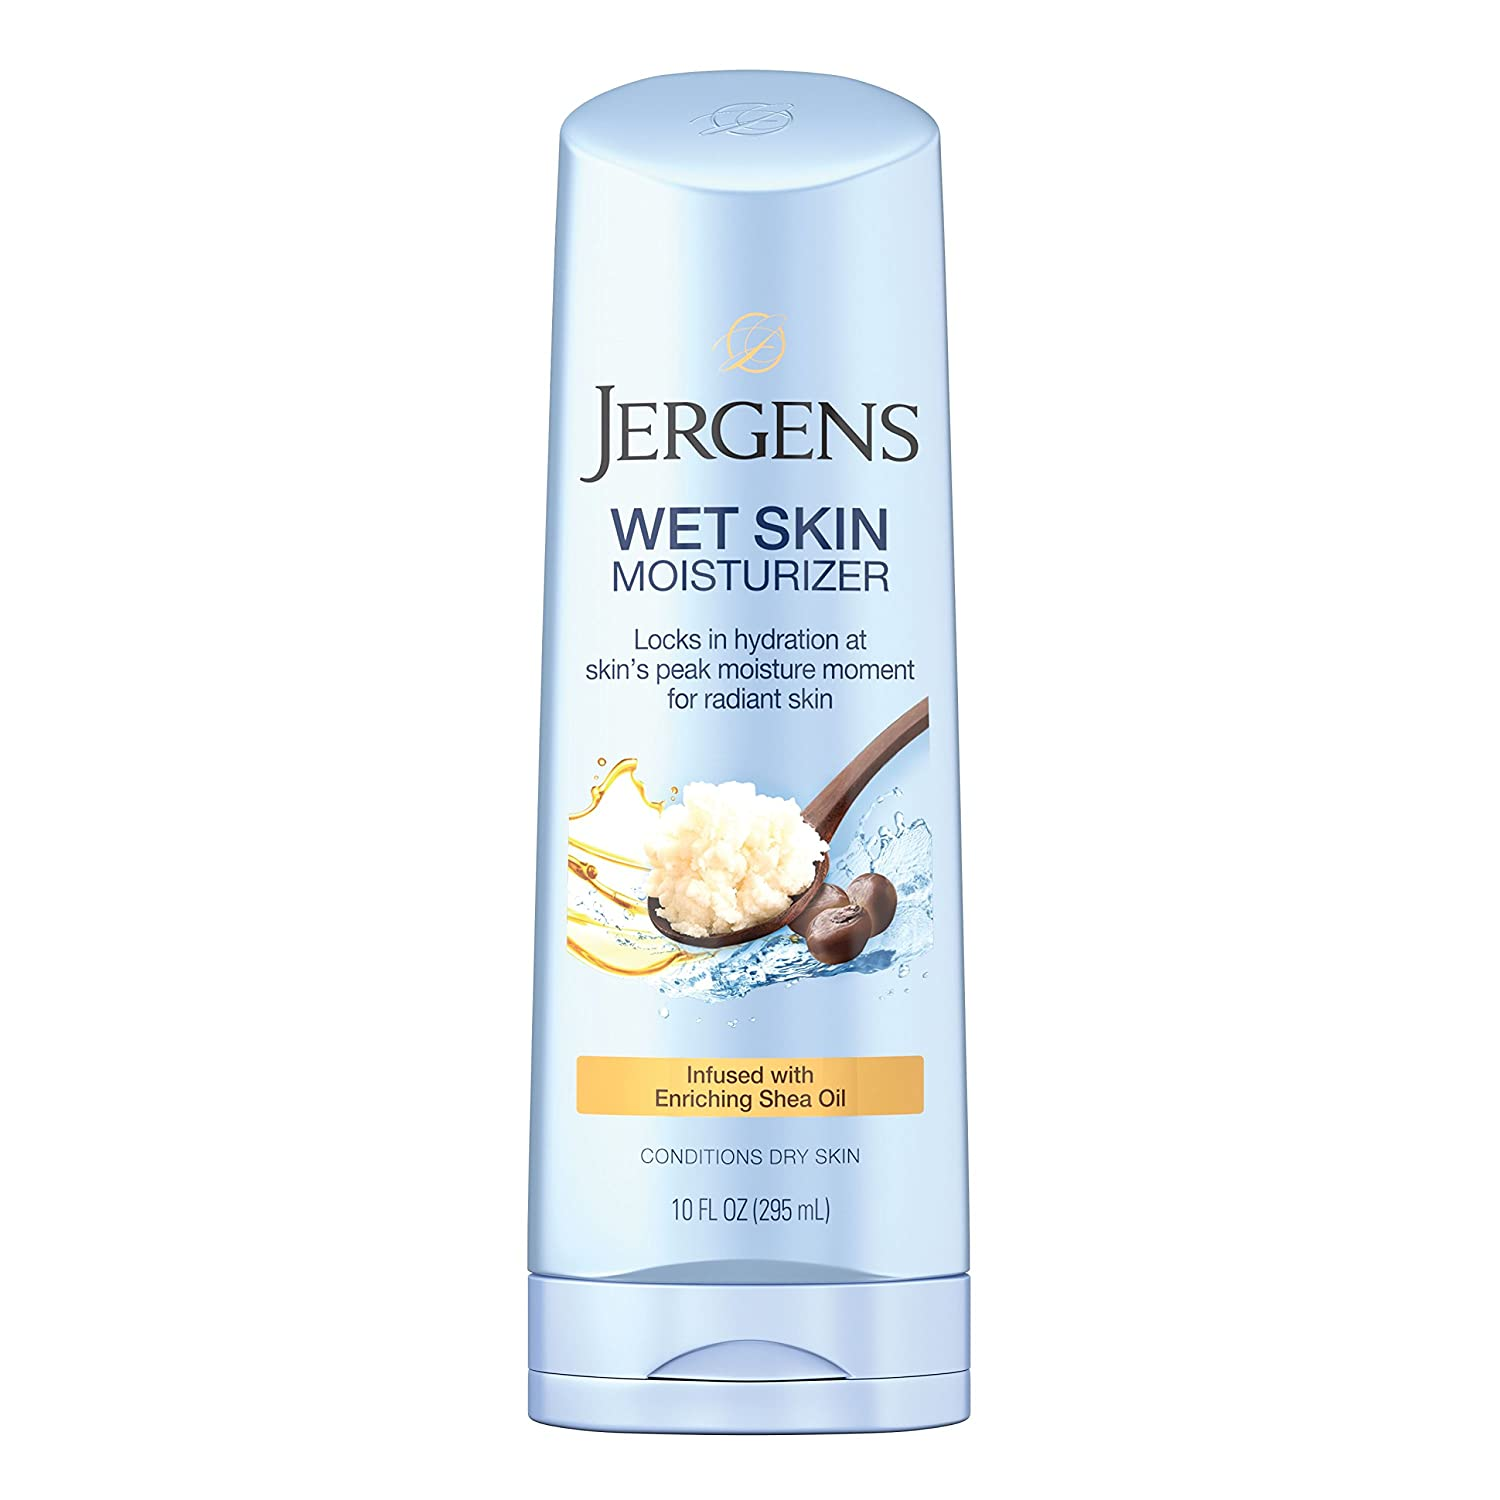 Jergens Wet Skin Body Moisturizer with Refreshing Coconut Oil, 10 Ounces (Packaging May Vary) NA